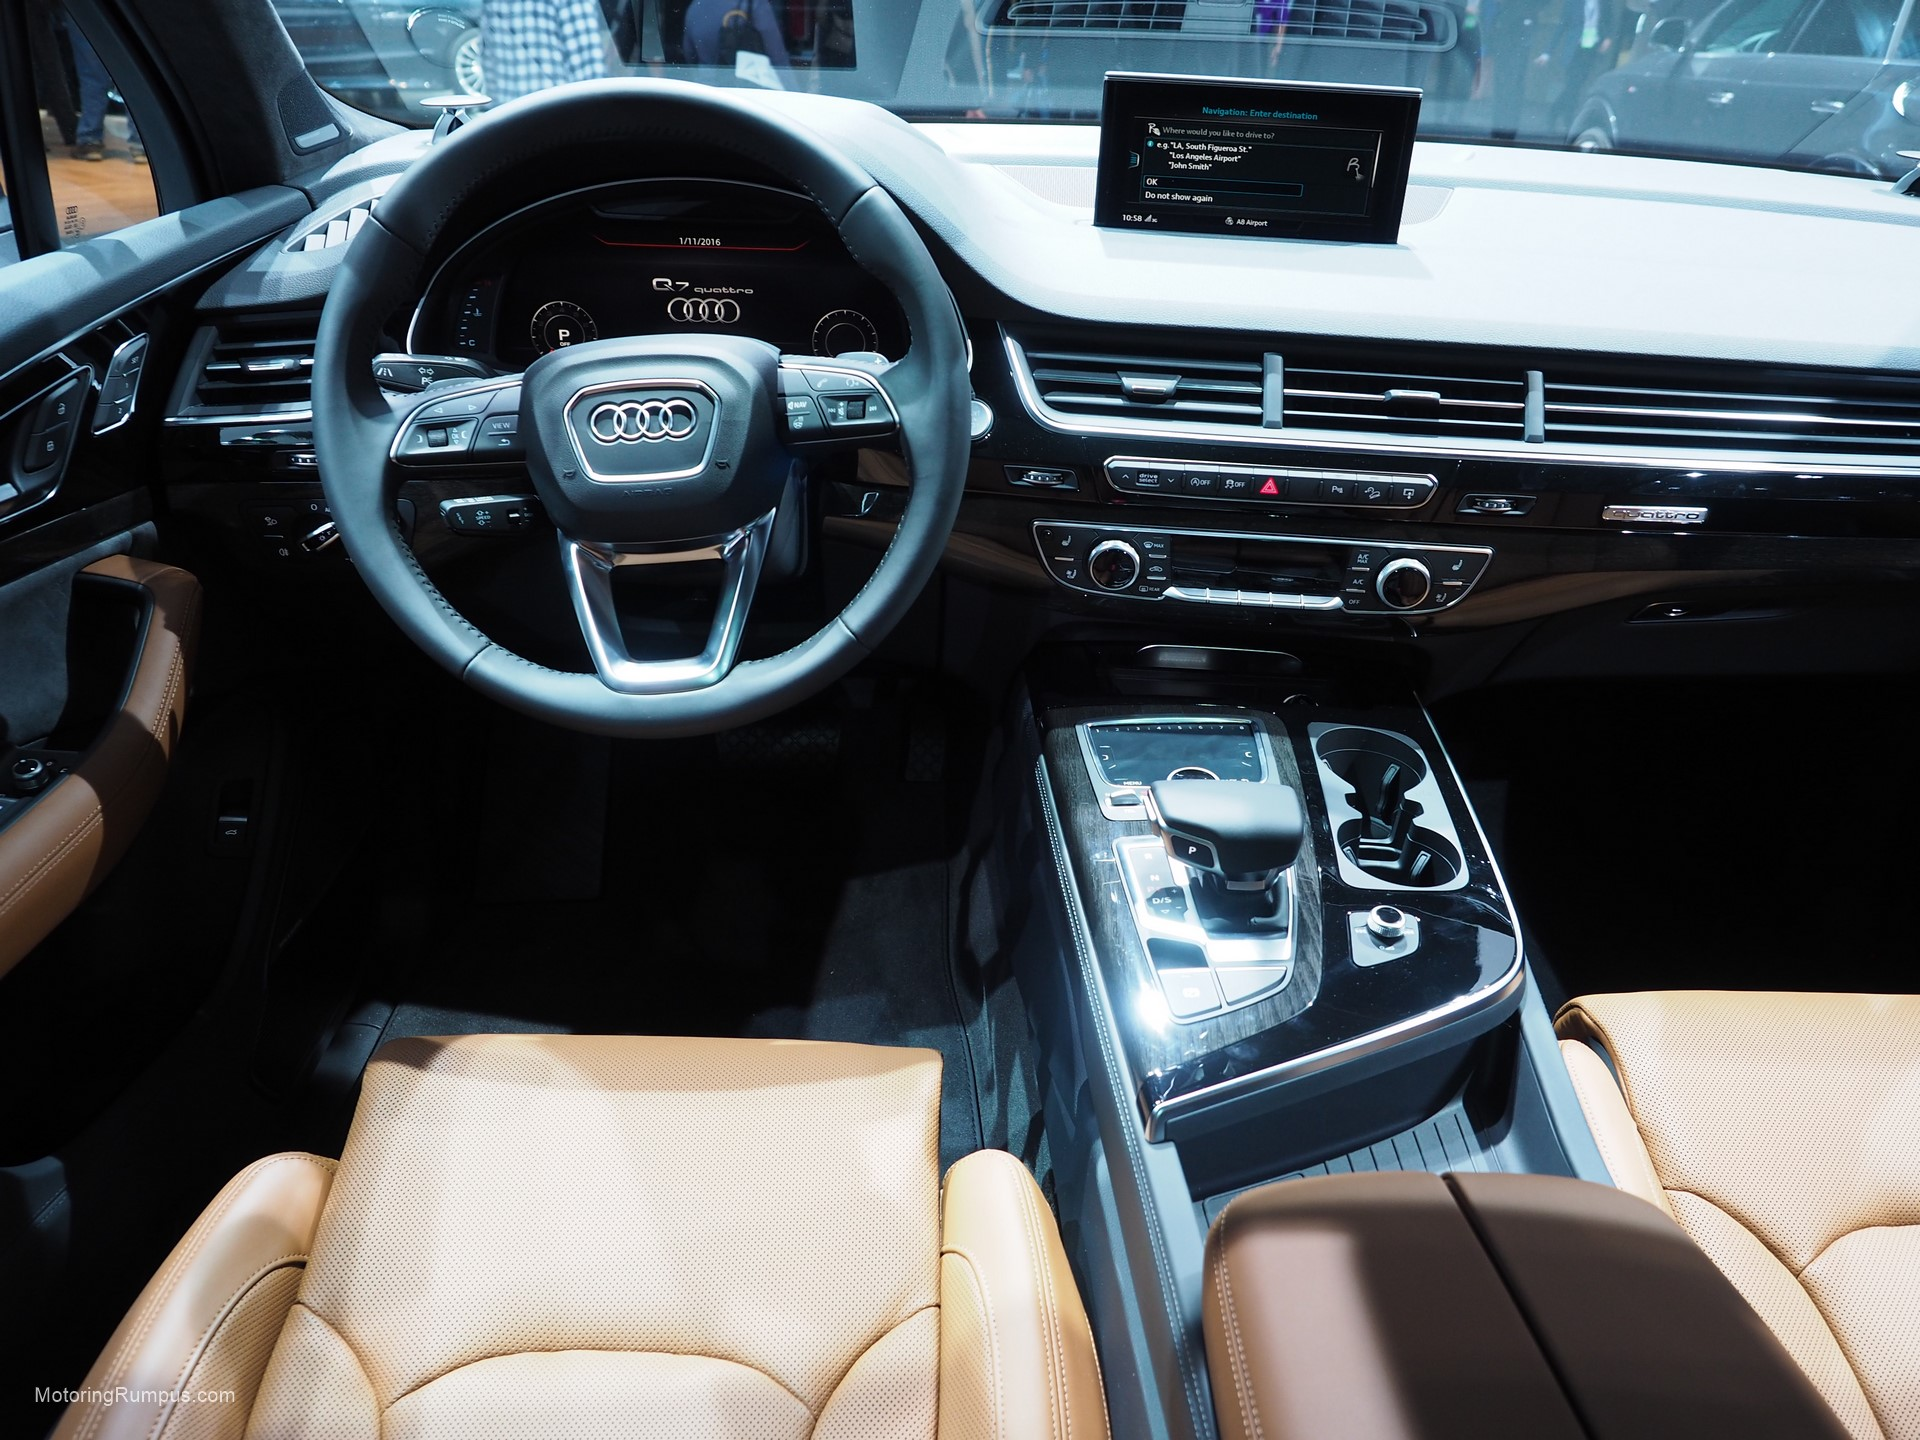 2016 Naias Audi Q7 Interior Motoring Rumpus